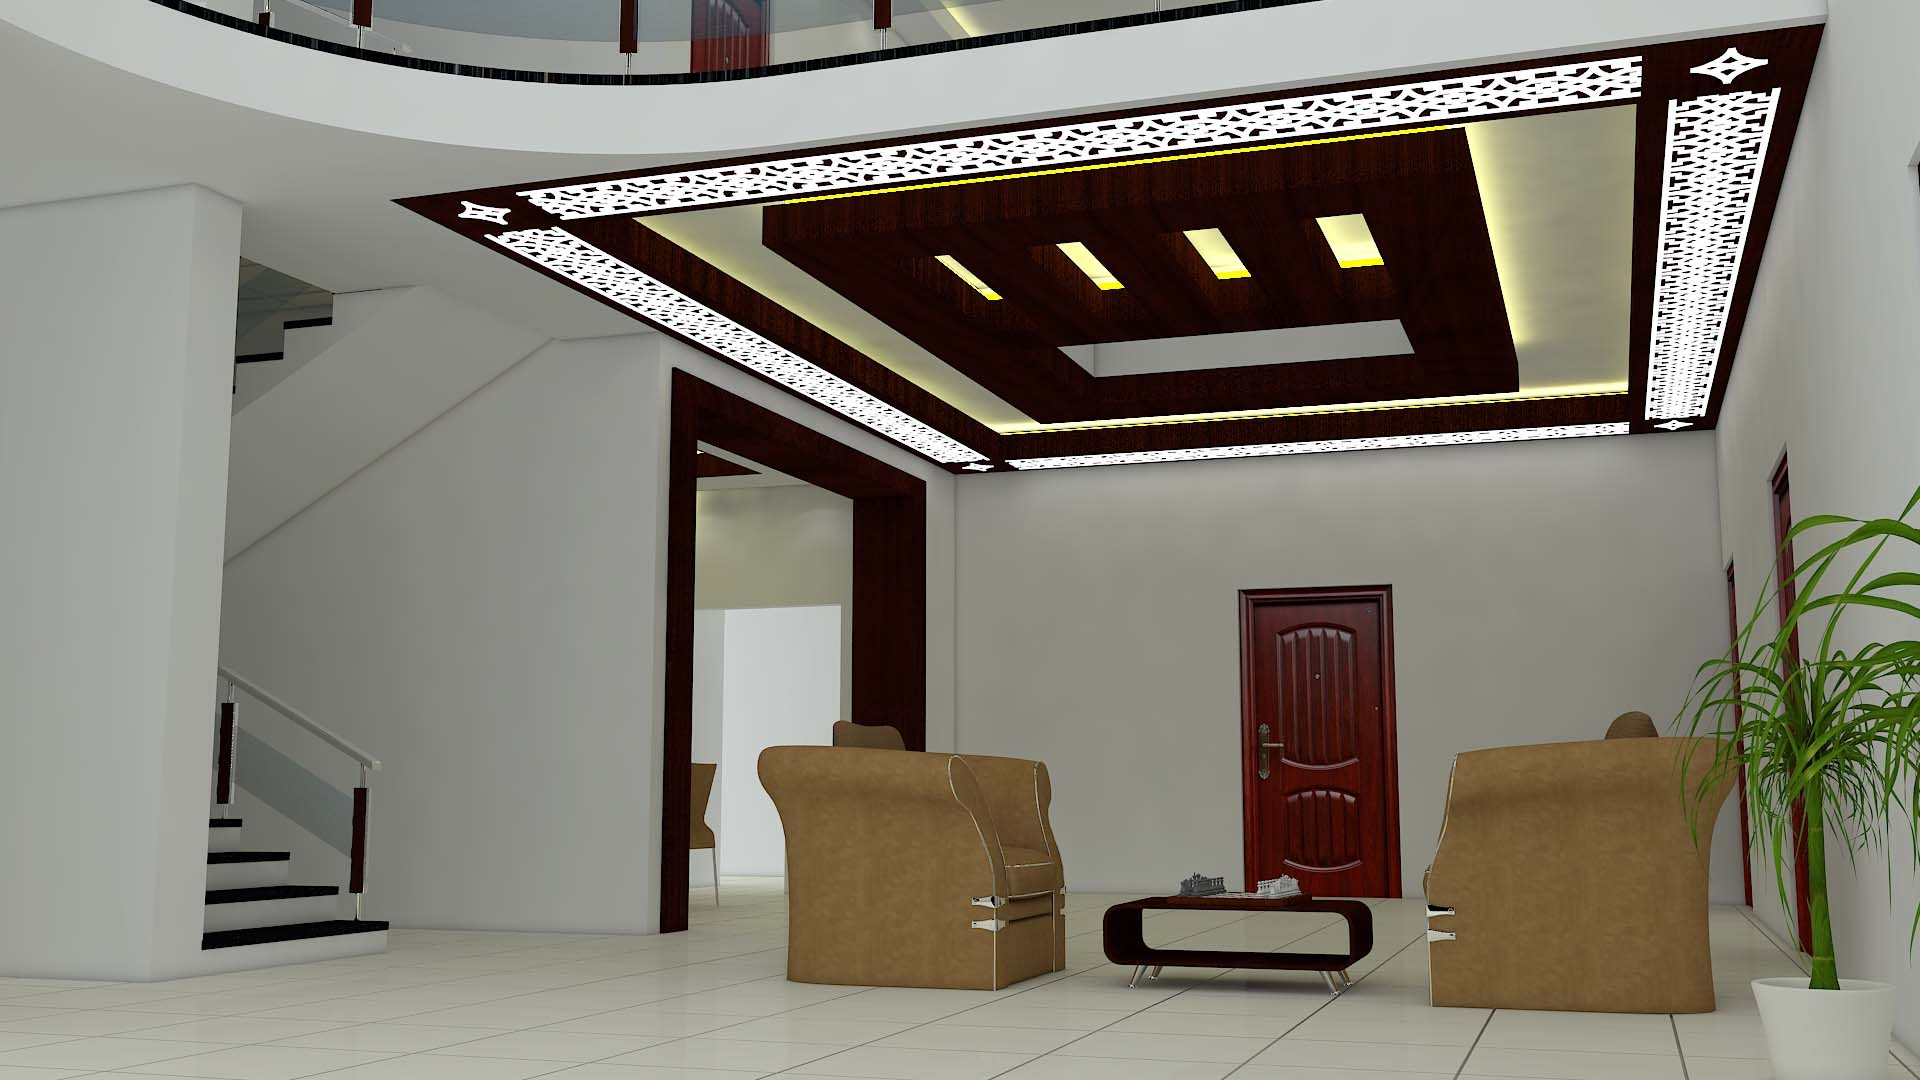 Affordable commercial interior design services in Chennai